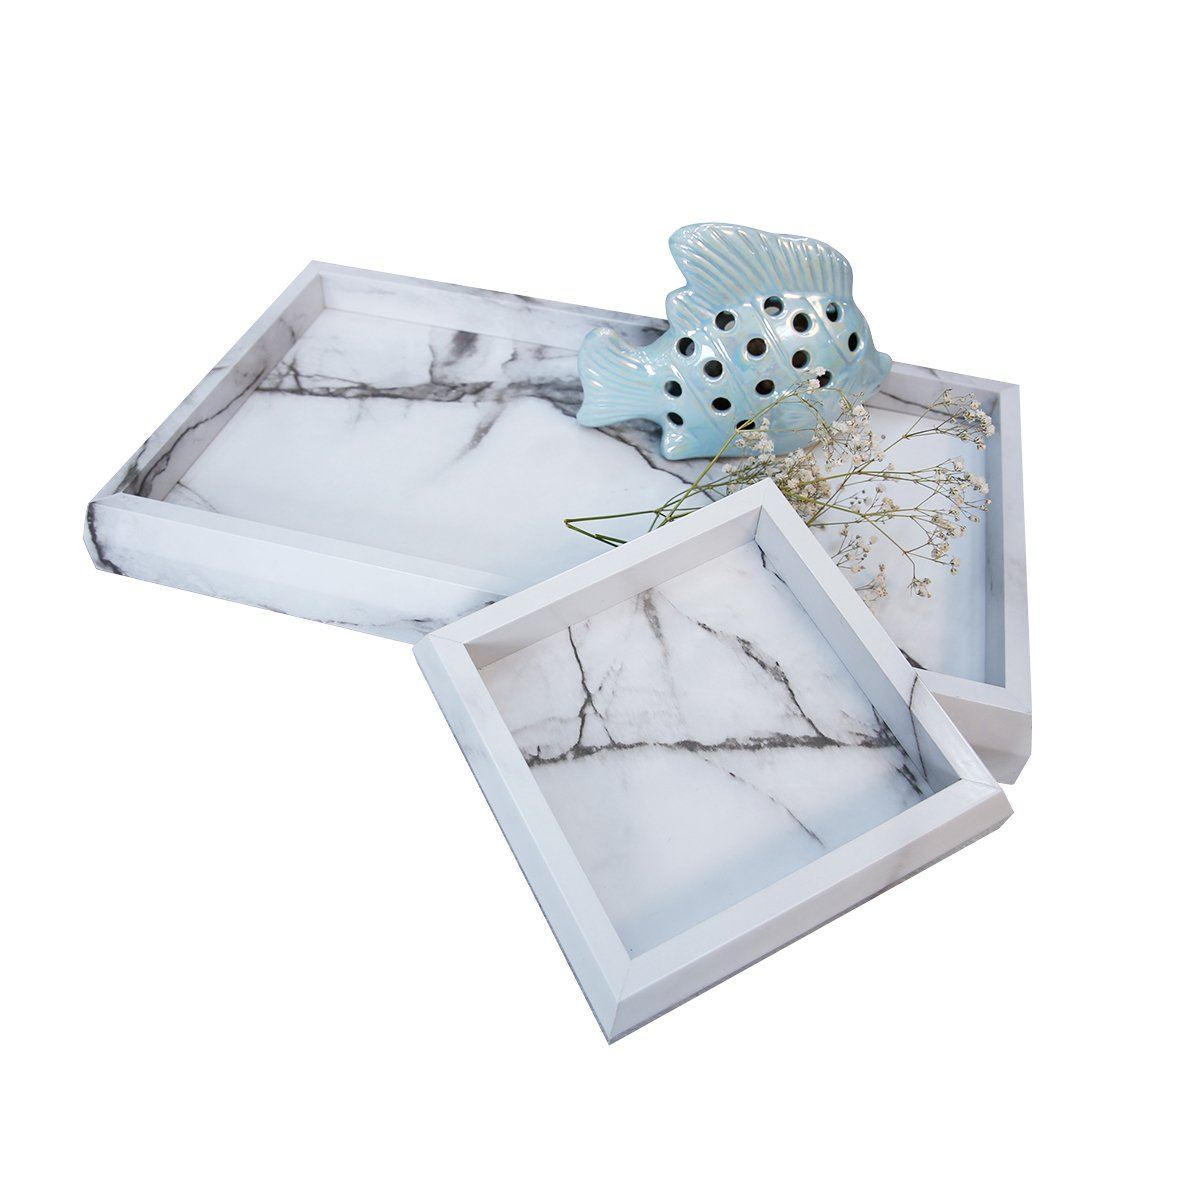 Roomfitters Marble Print Vanity Tray Set, Best Bathroom Catchall Trays for Jewelry Perfume, Upgraded Version Water Resistant, Anti-Scratch by Roomfitters (Image #5)